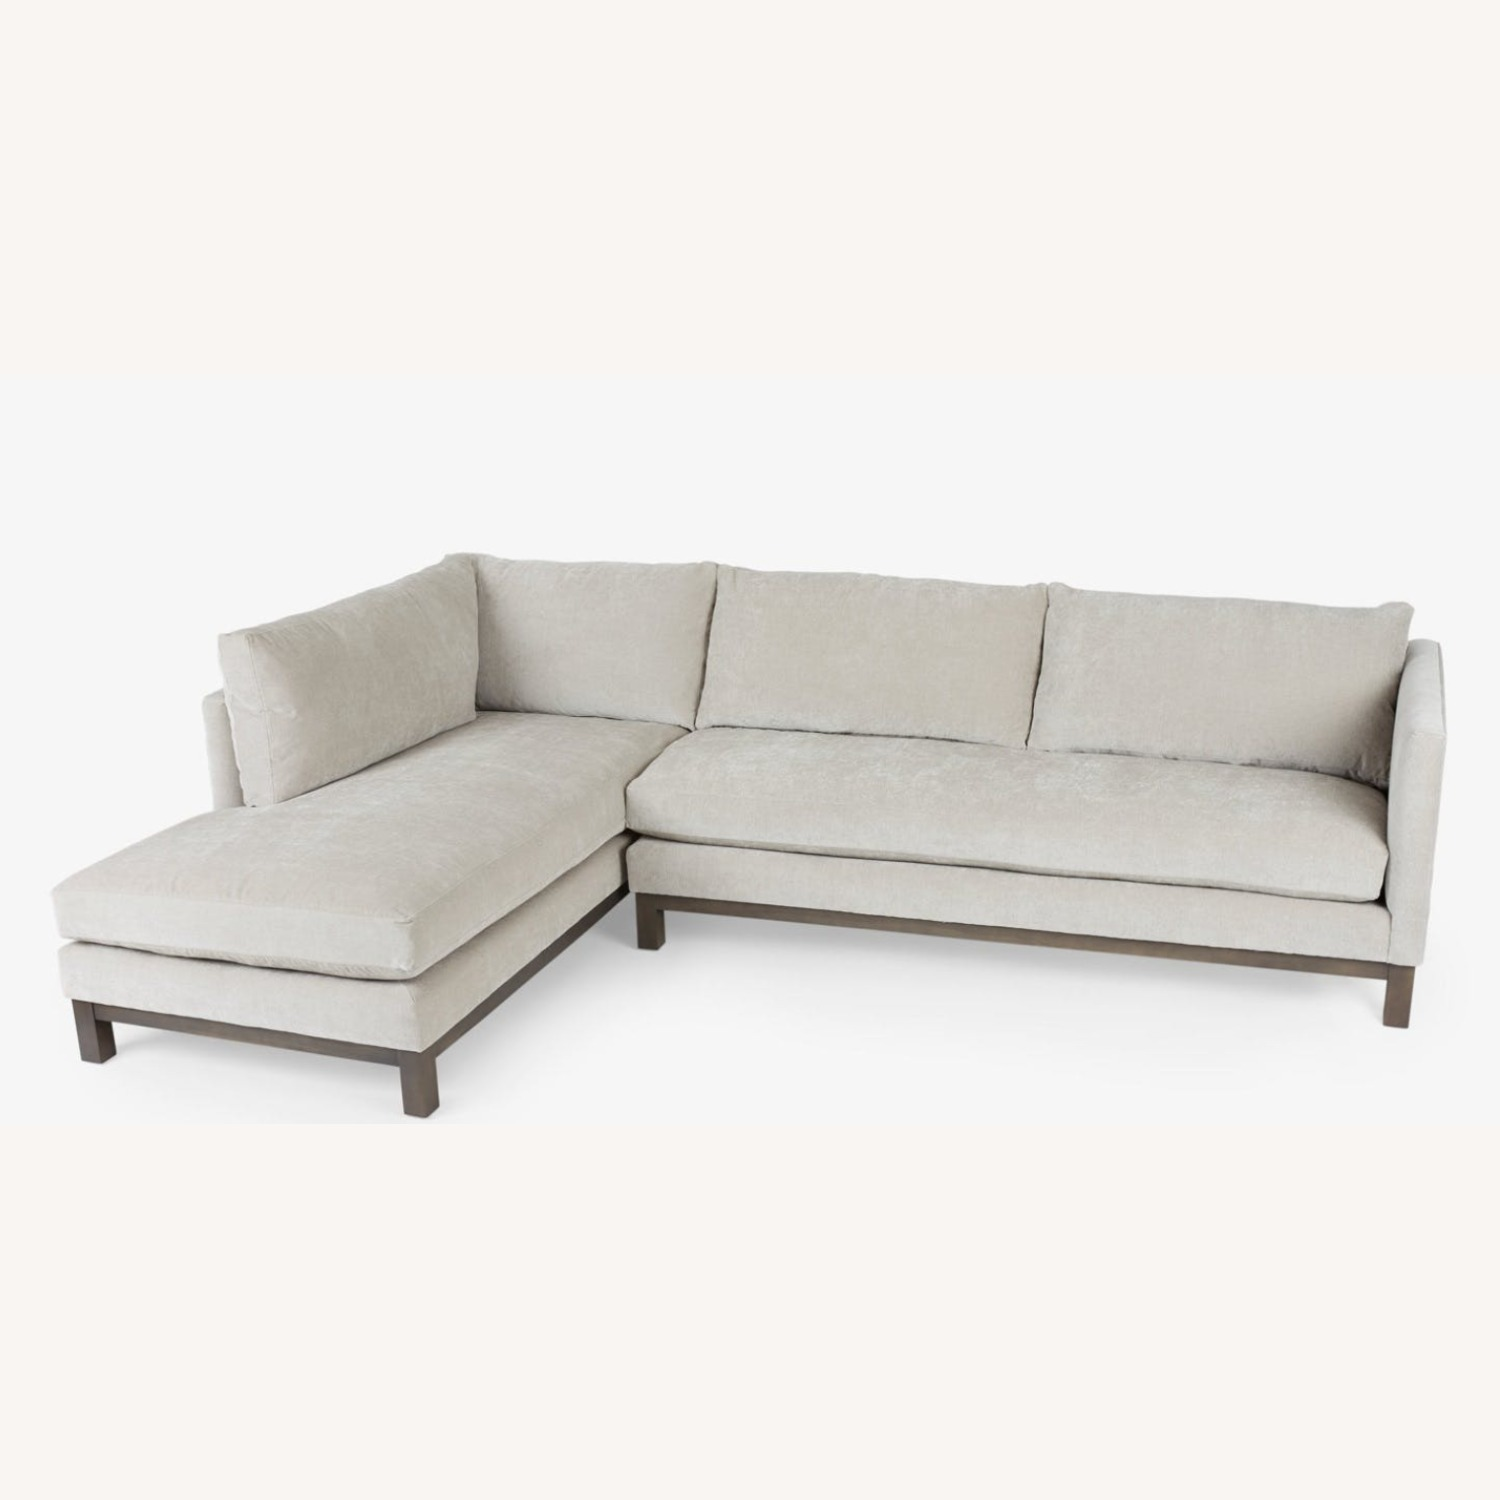 ABC Carpet & Home Prescott Sectional - image-1